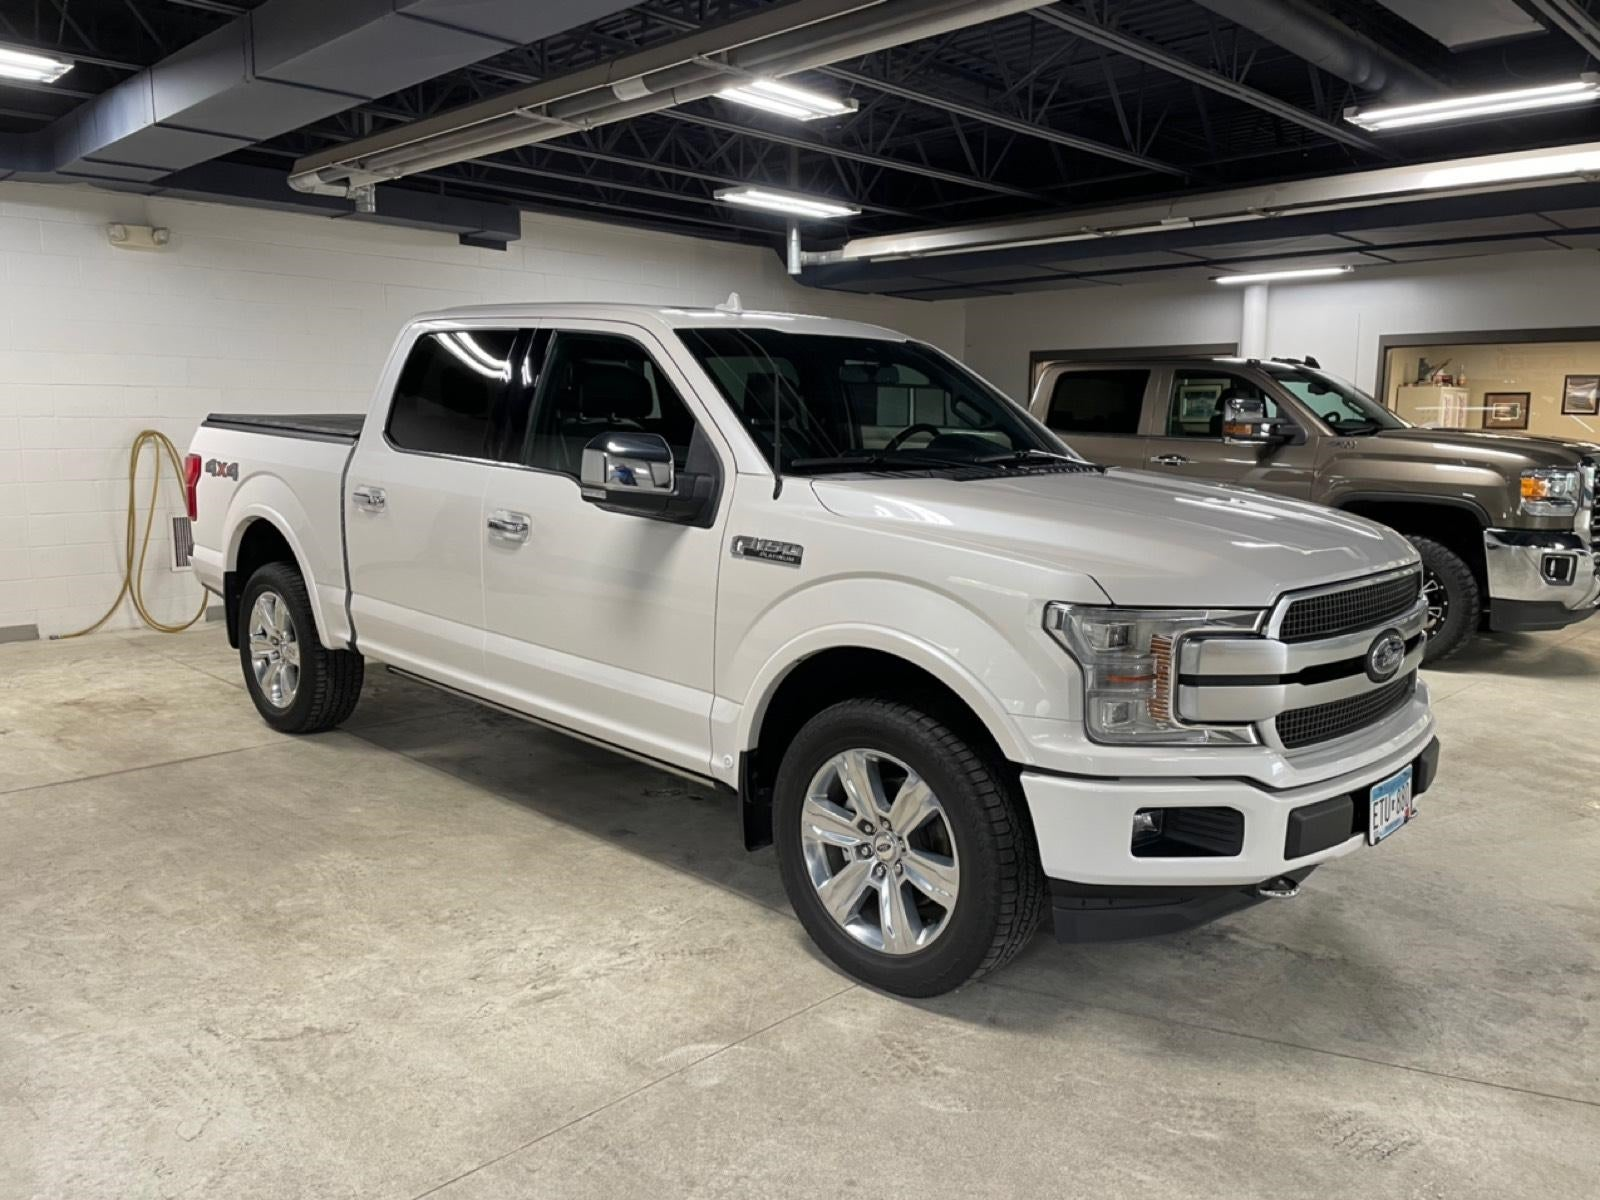 Used 2019 Ford F-150 Platinum with VIN 1FTEW1E45KFC08719 for sale in New Ulm, Minnesota